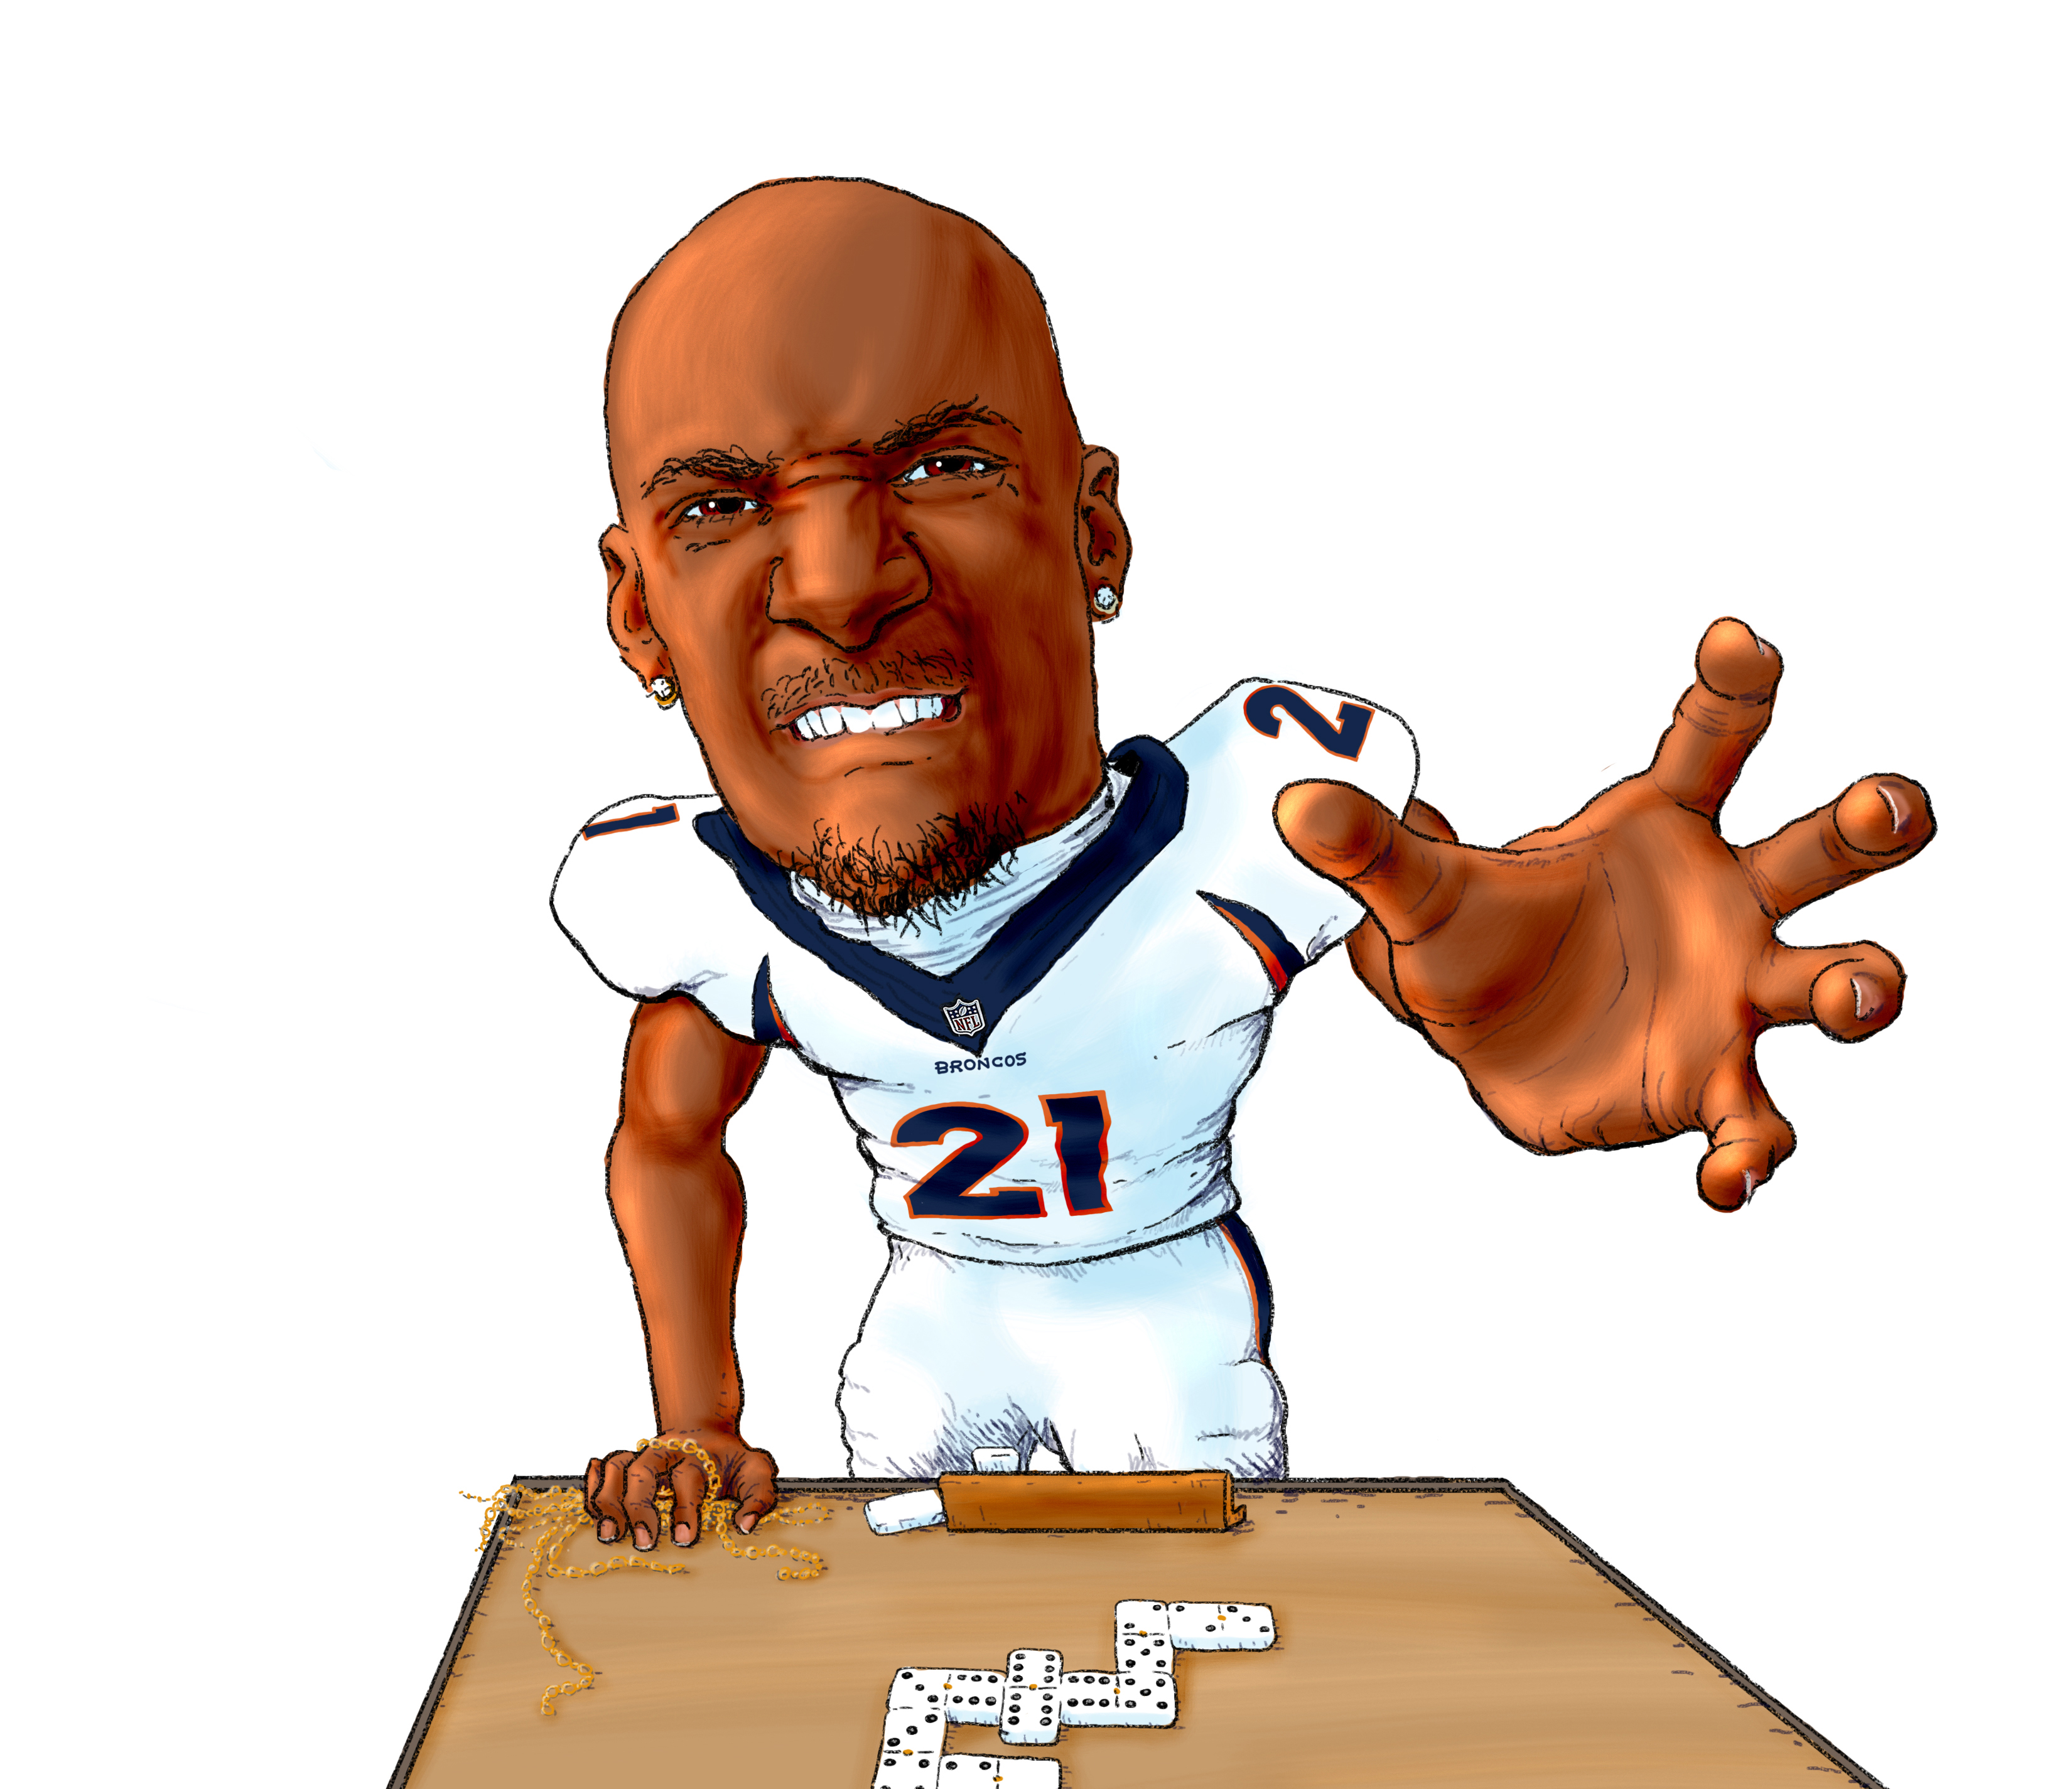 Highlighting Denver Bronco Aqib Talib and his penchant for snatching gold chains from opposing wide receivers. During his suspension in 2017 due to a chain snatch and the resulting fistfight, his coach was asked what Aqib was busy doing. To which he said, probably playing dominoes in the locker room. It doesn't take much to imagine what a game like that might look like...